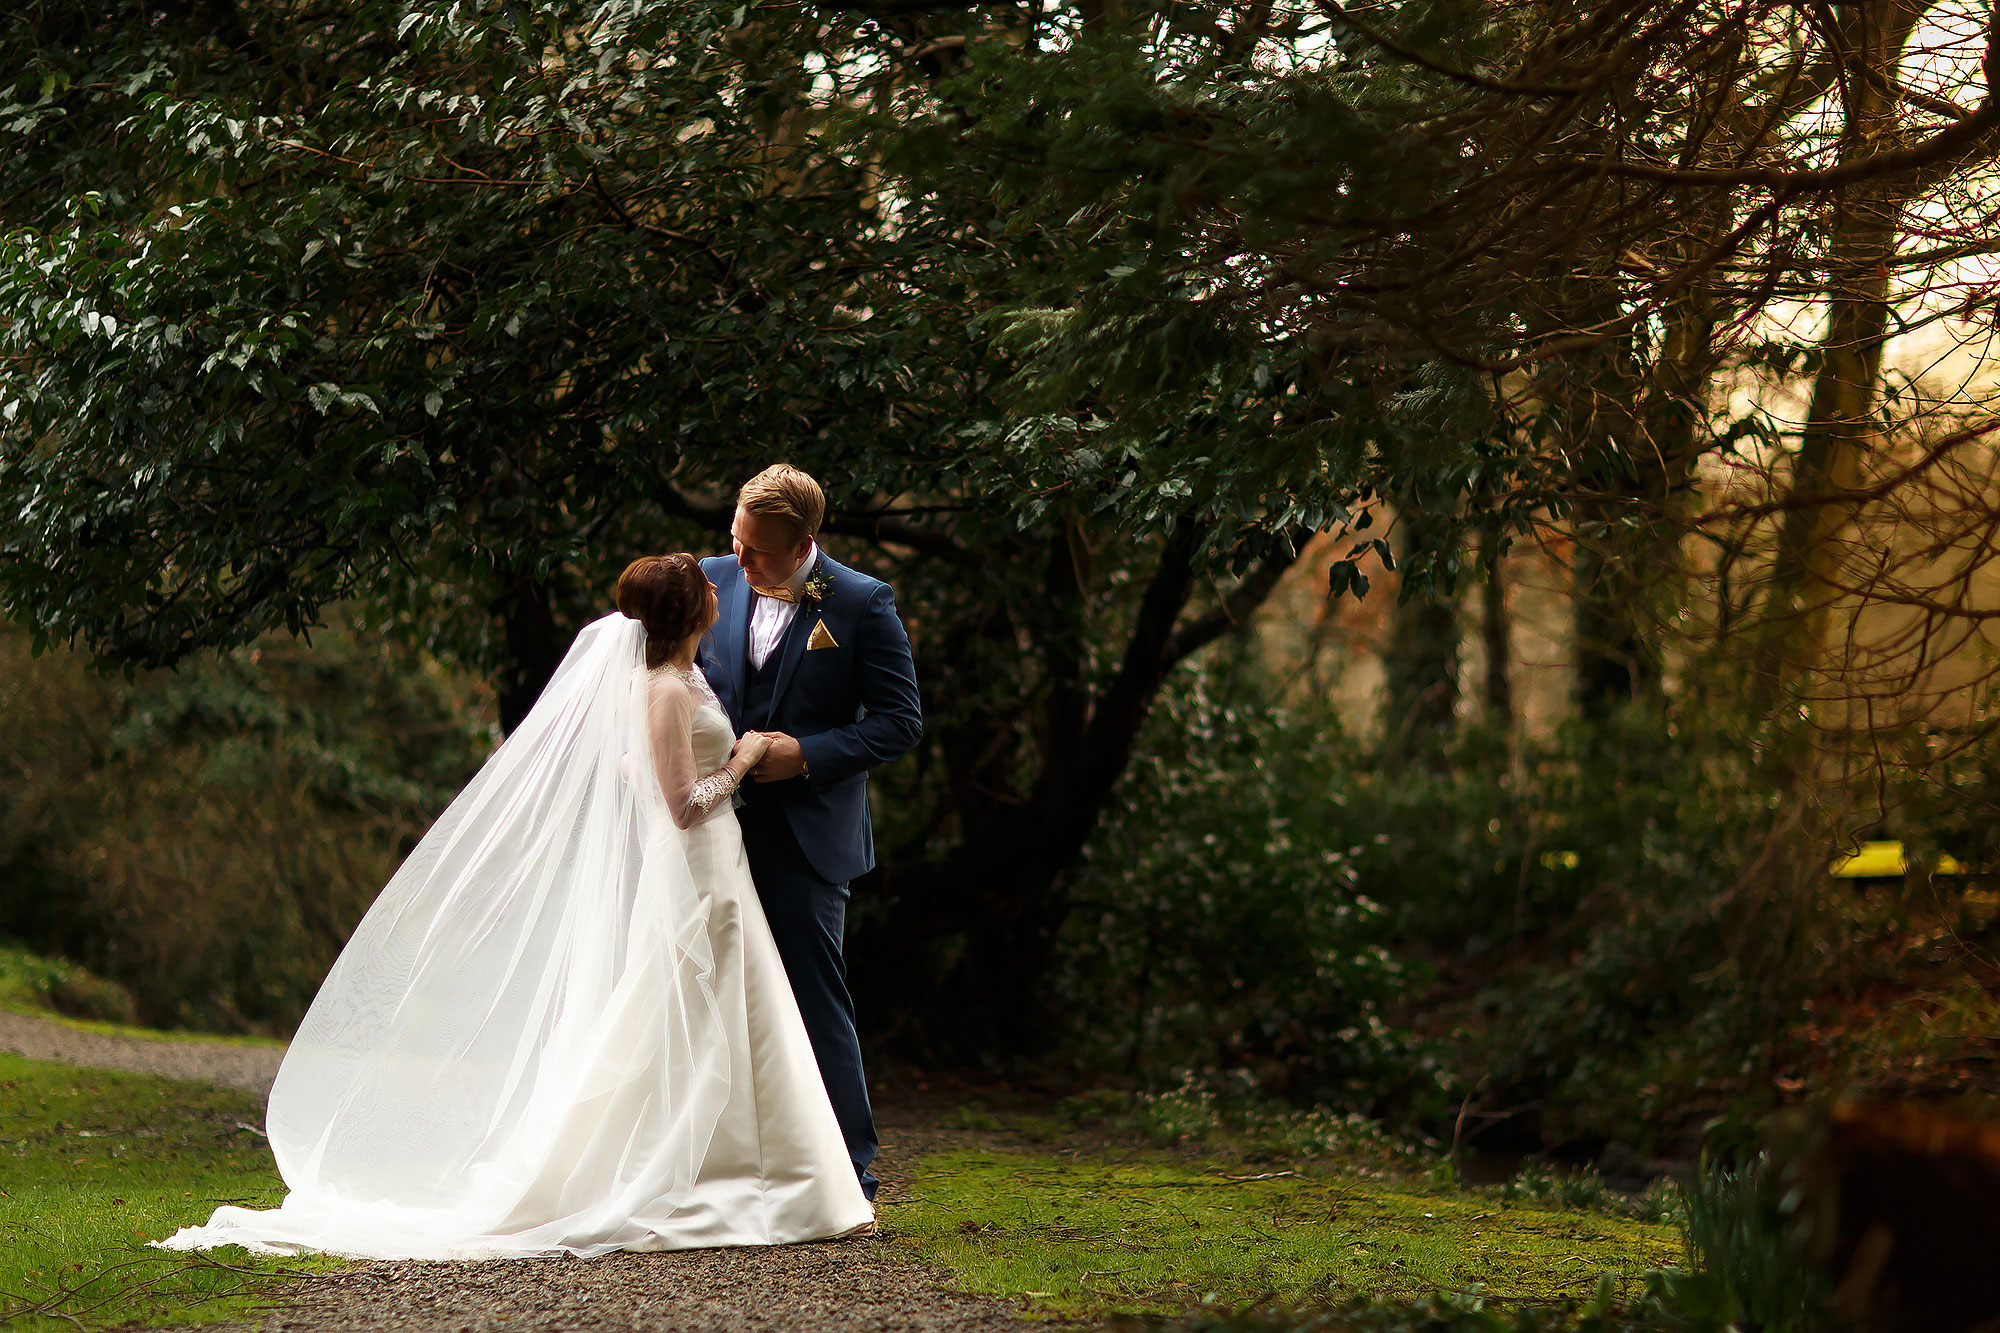 Bride and groom looking towards one another as the long wedding veil flows in the wind in the gardens of Mitton Hall | Mitton Hall wedding photographs by Toni Darcy Photography